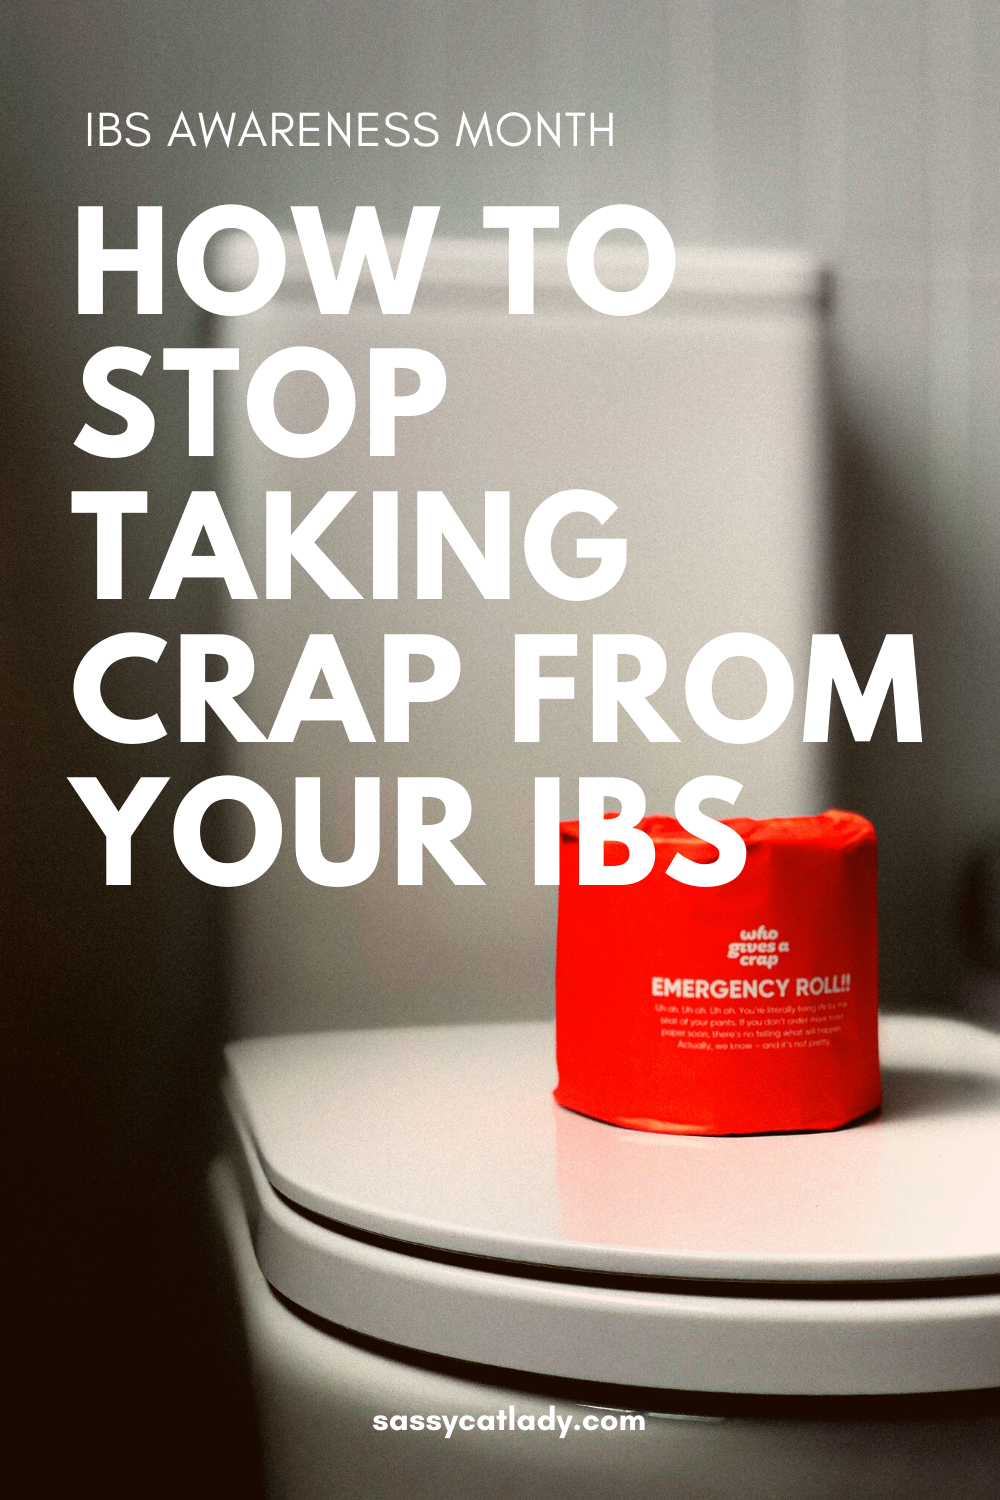 How to Stop Taking Crap From Your IBS